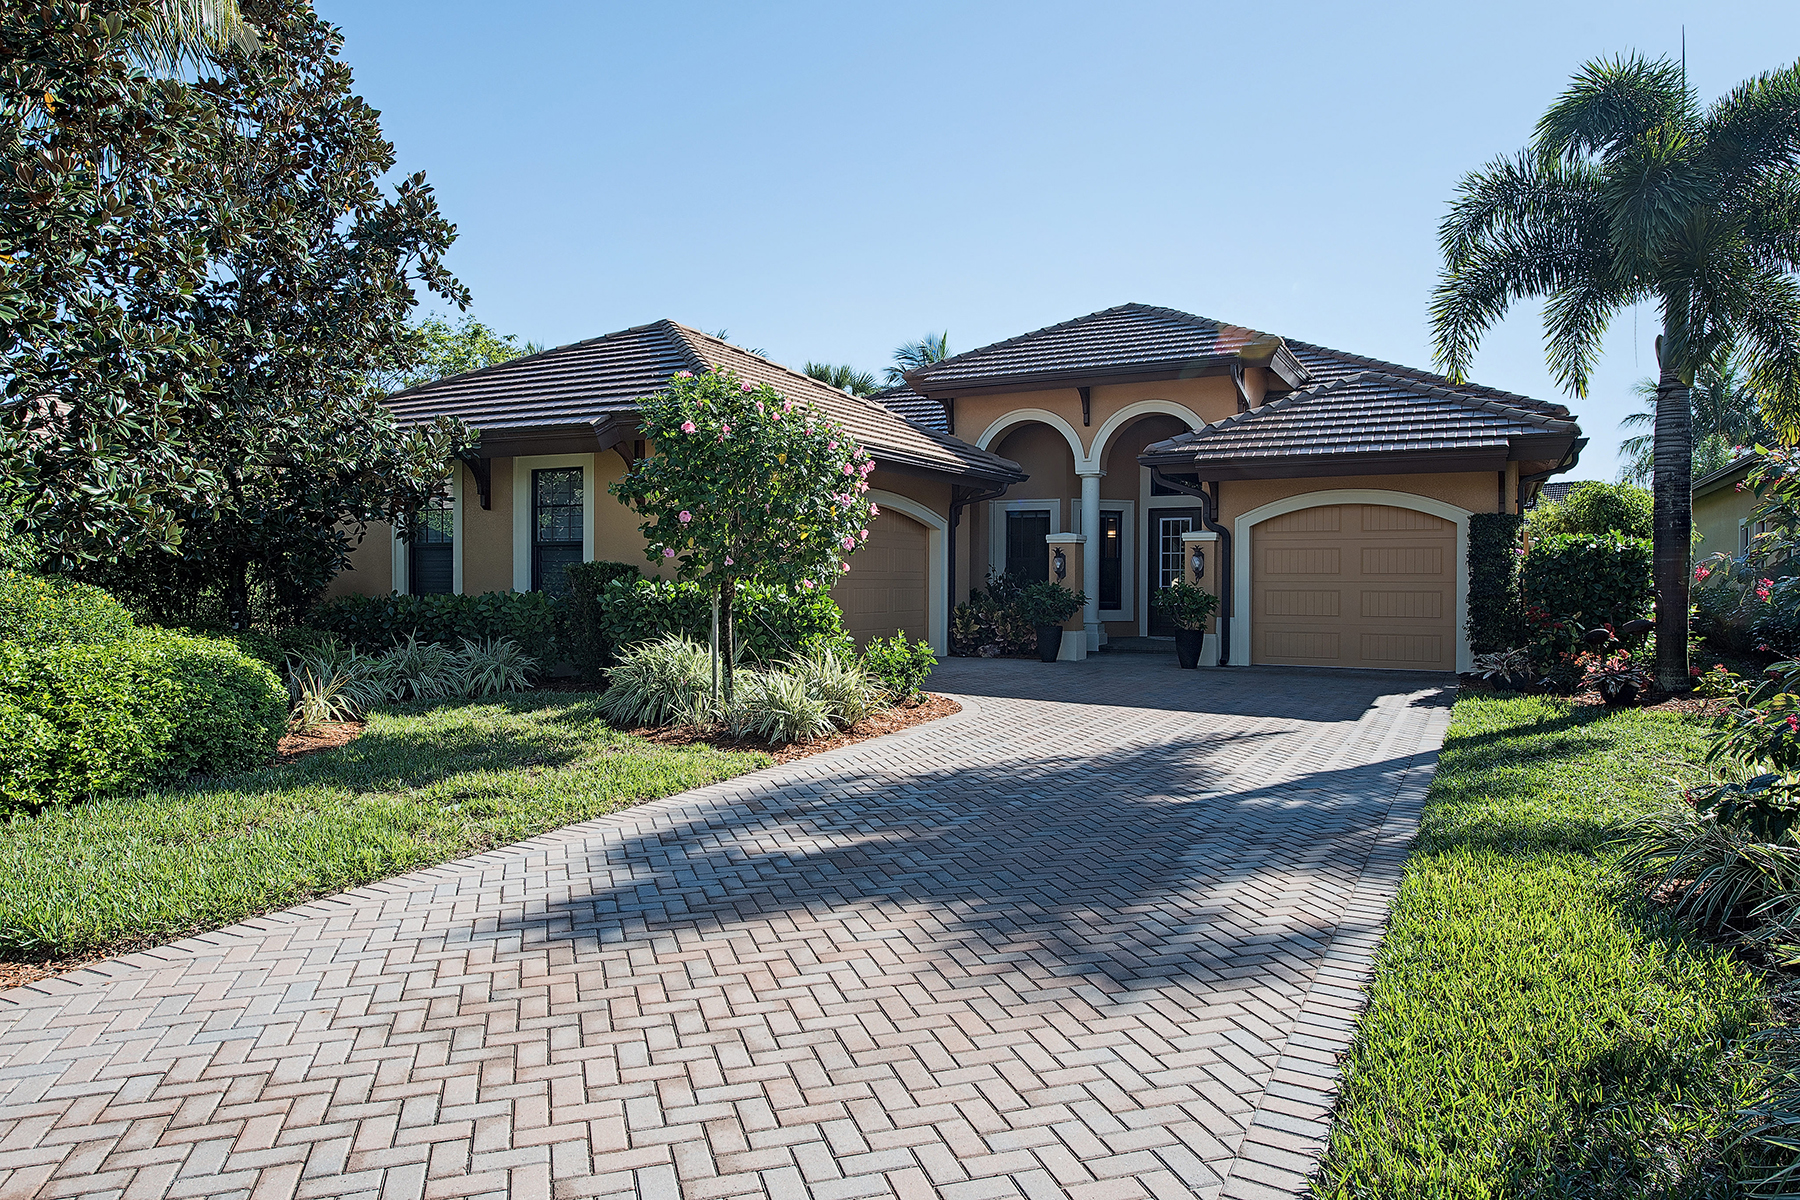 Single Family Home for Sale at LELY COUNTRY CLUB 7482 Martinique Naples, Florida, 34113 United States